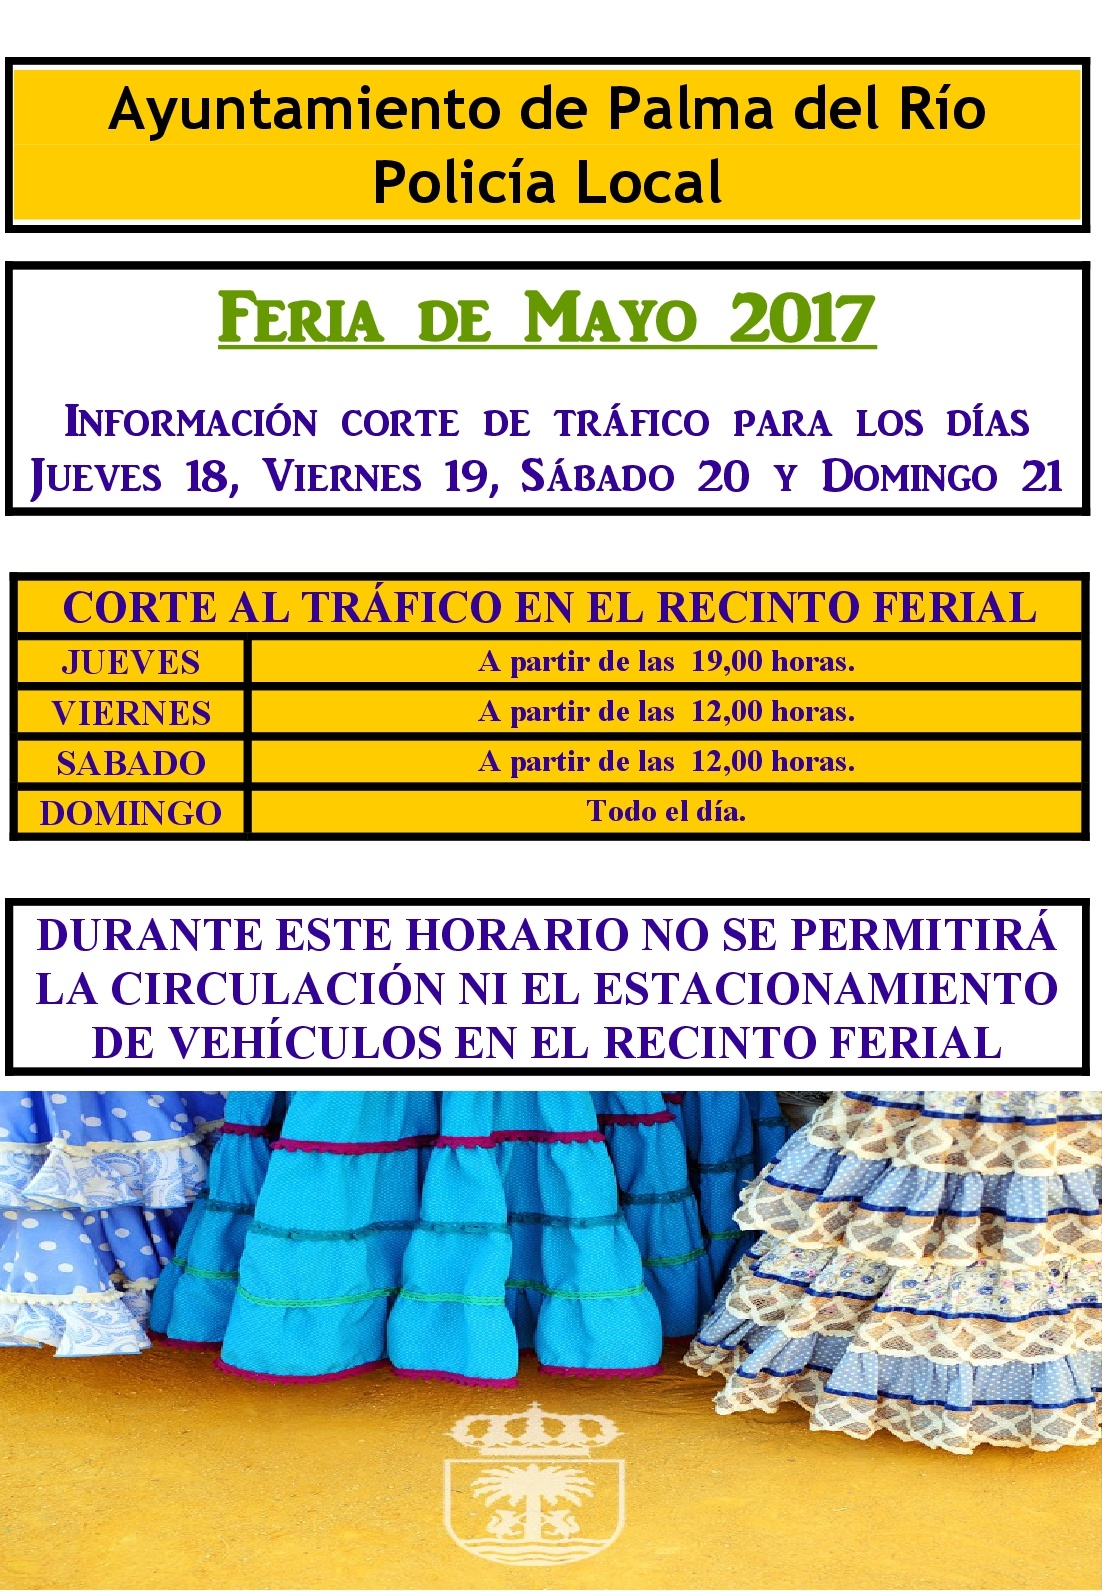 https://www.palmadelrio.es/sites/default/files/-corte_trafico_bueno_feria-001.jpg